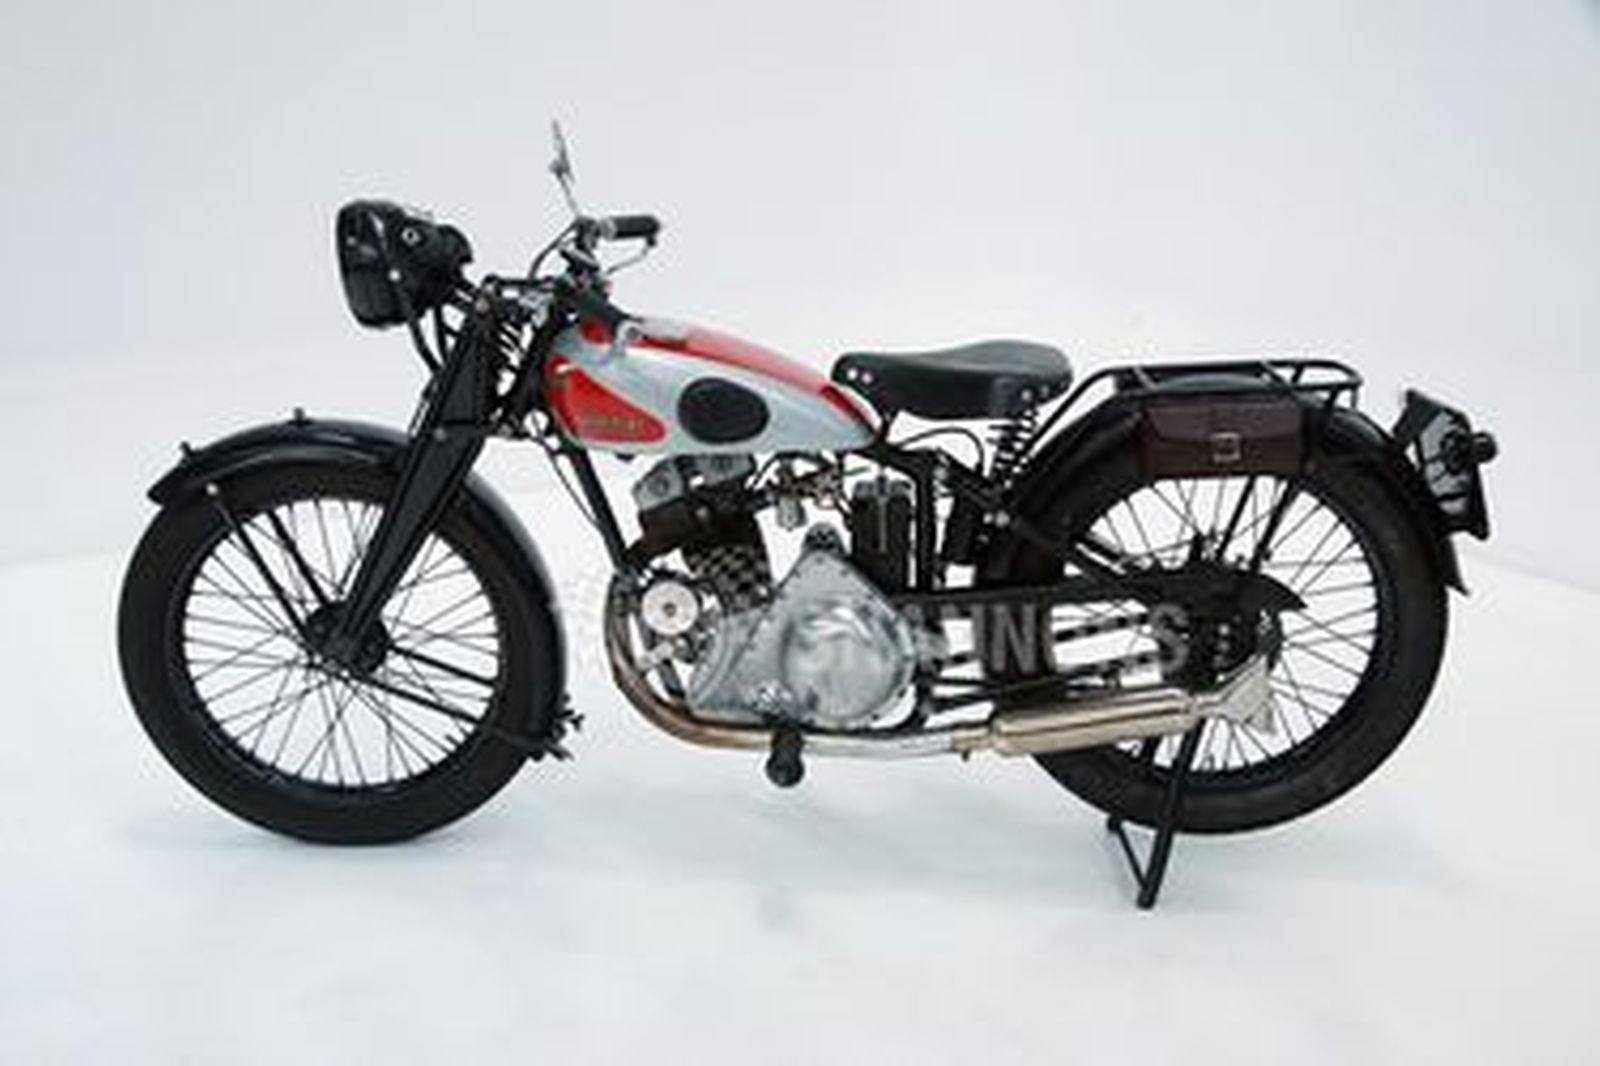 New Imperial 250cc 30 Deluxe Motorcycle